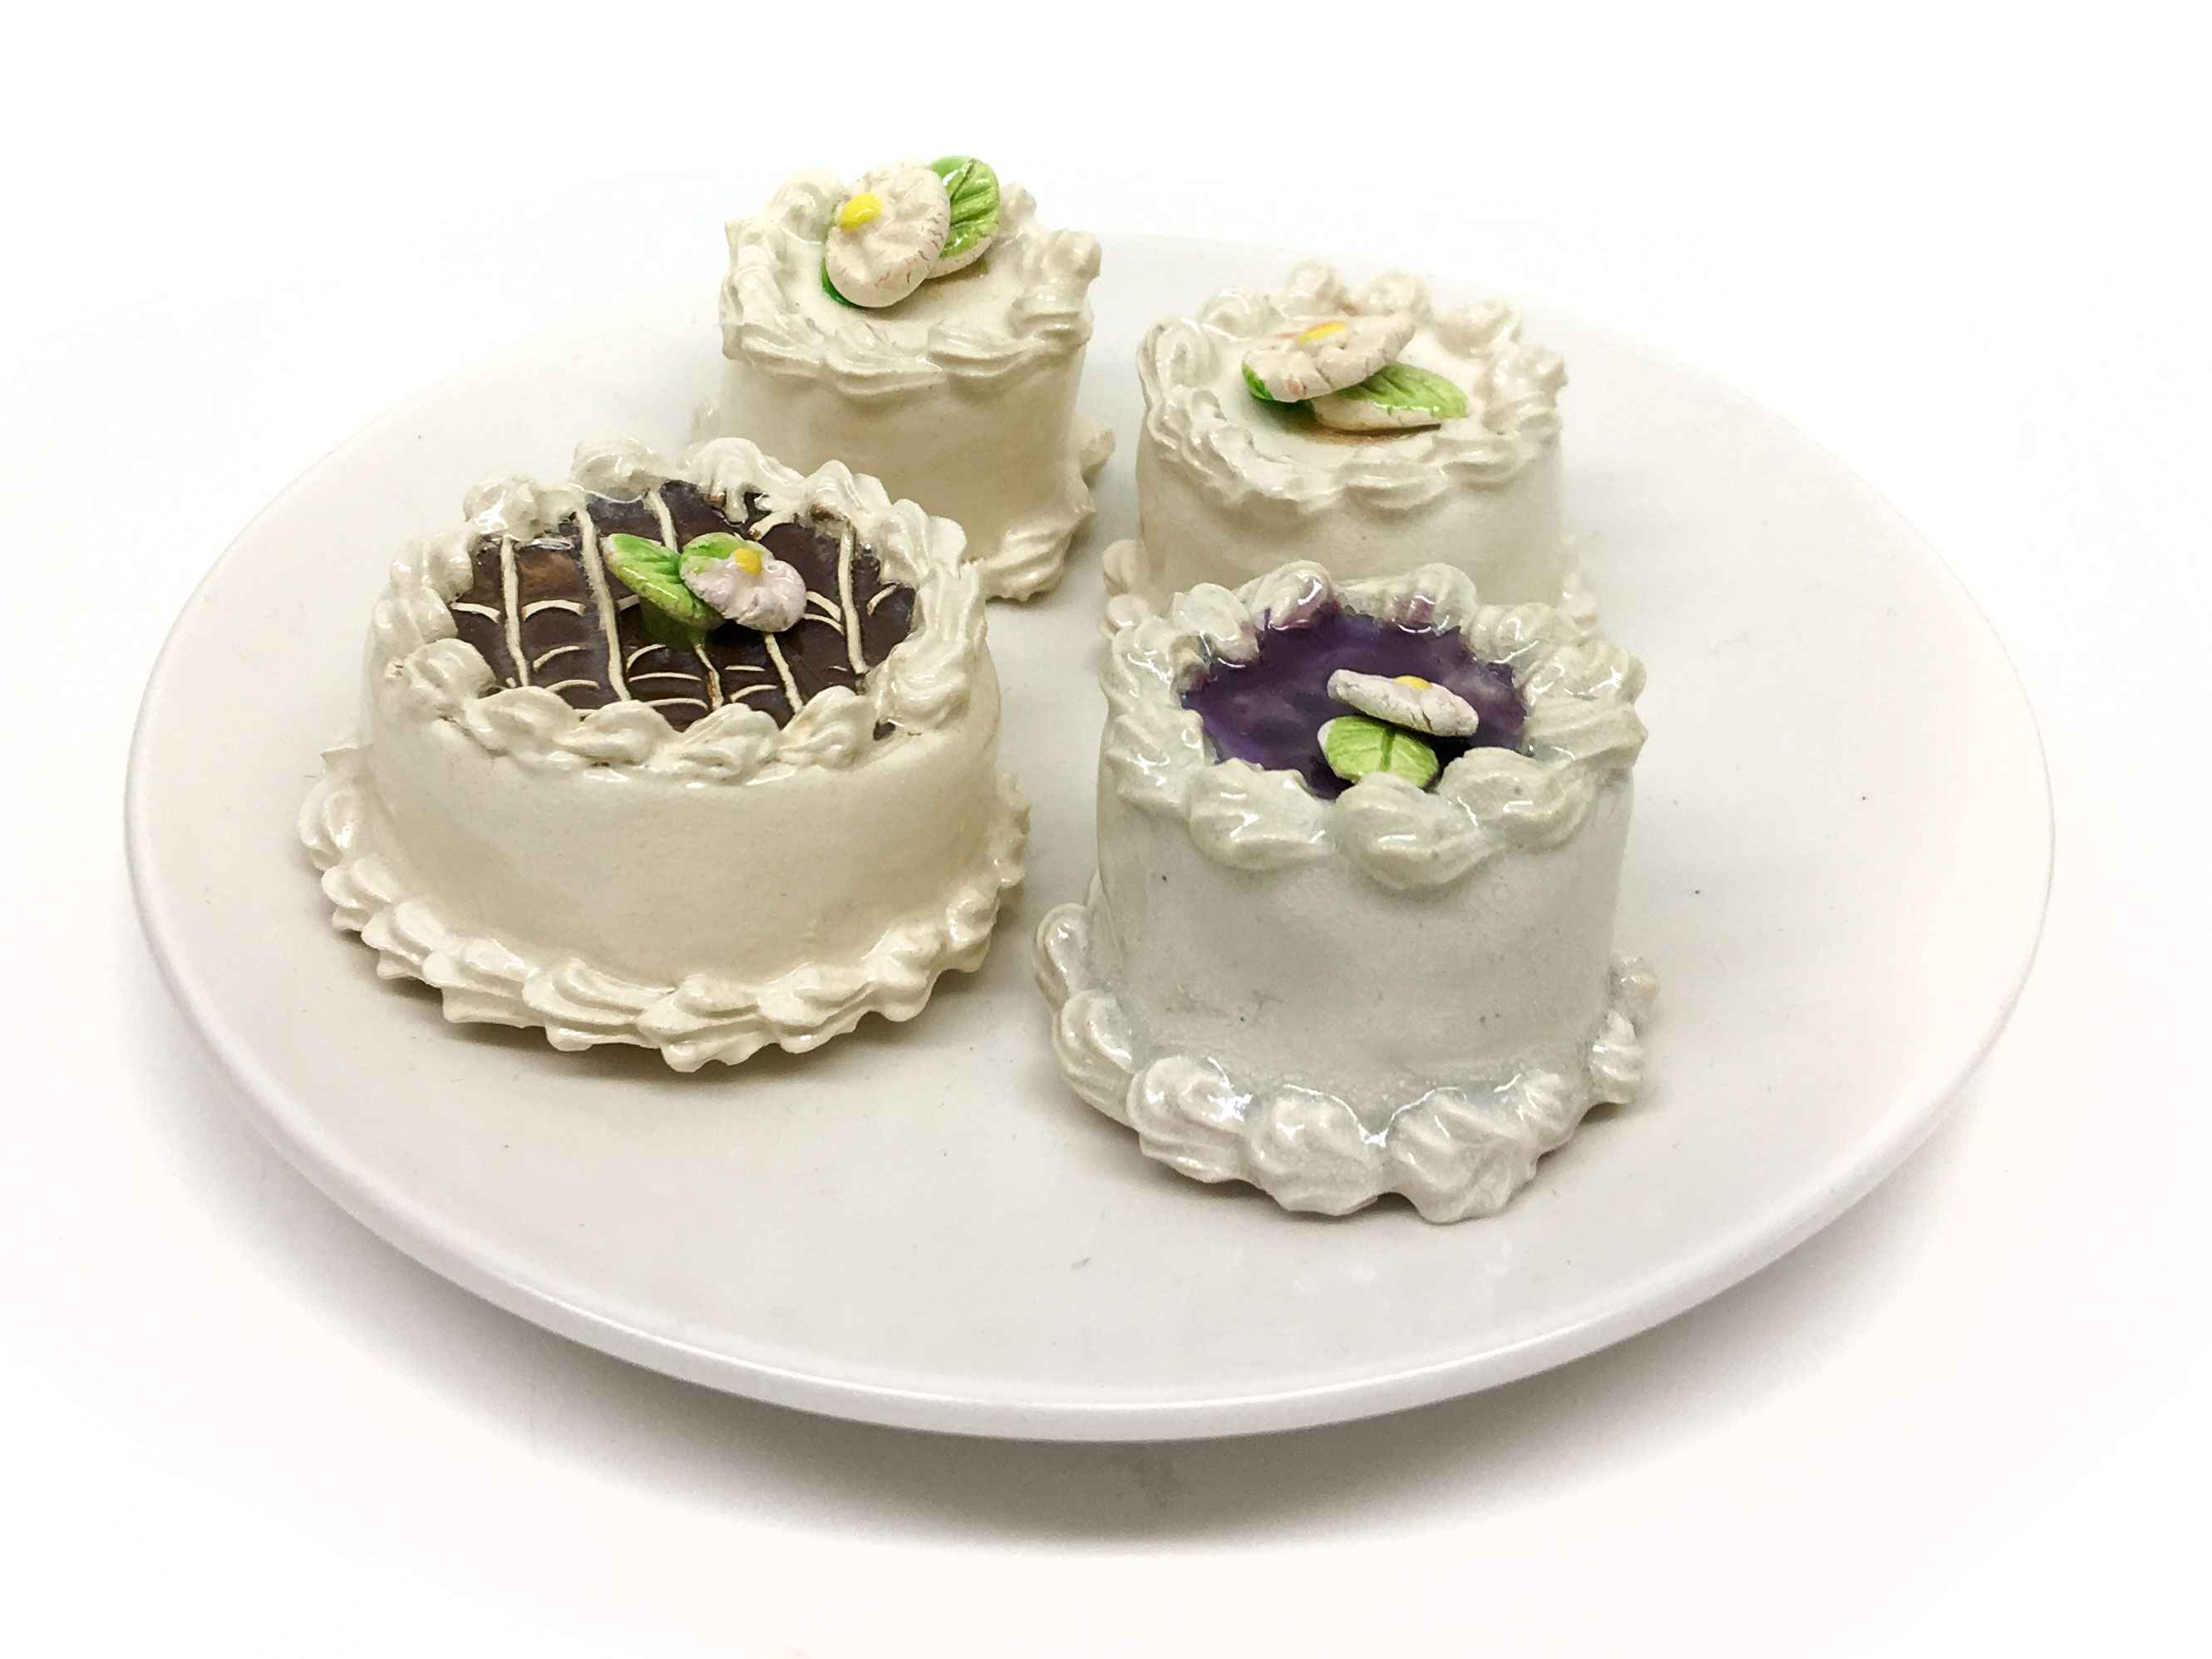 Plate Of Four Cakes (...  by  Jeff Nebeker